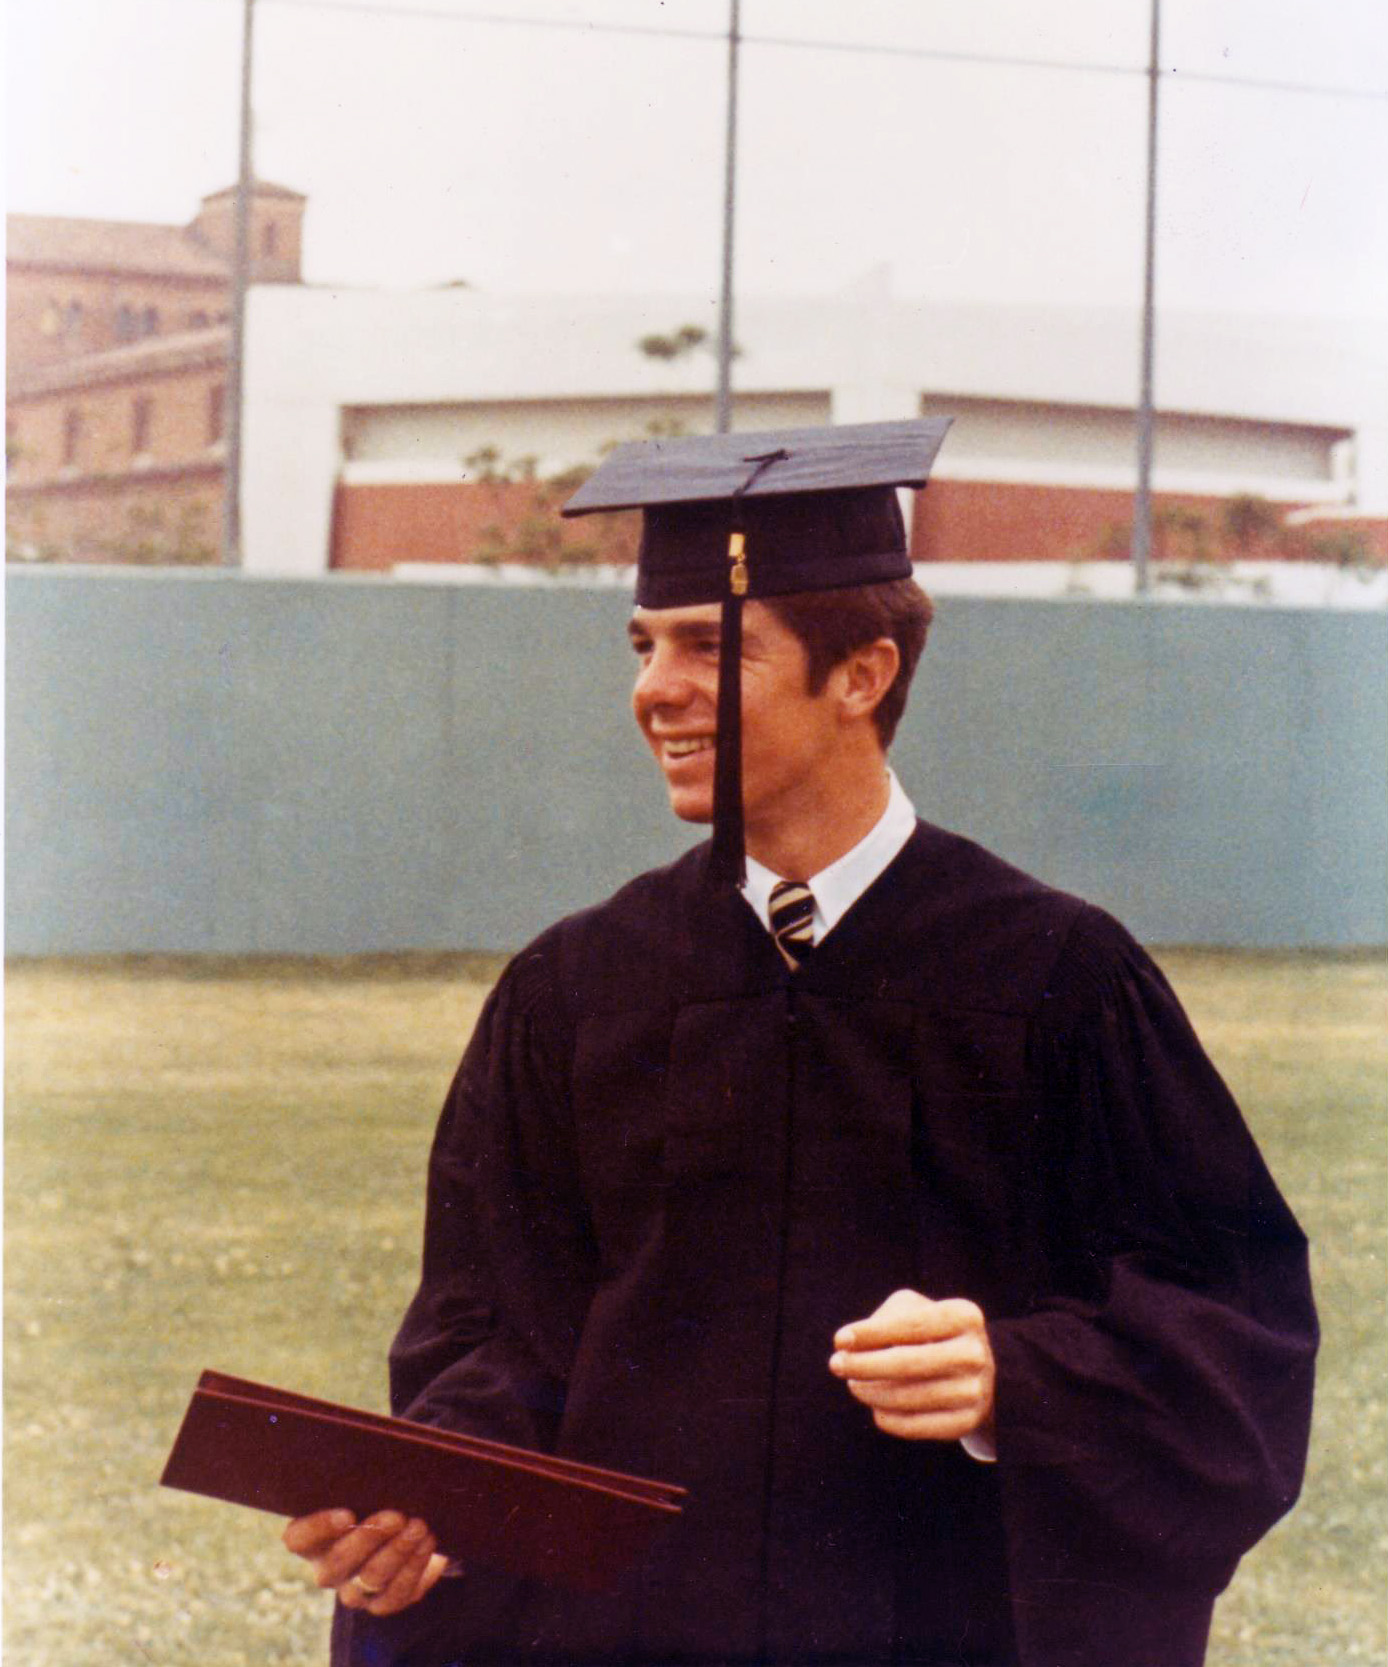 Grover at his USC Graduation in 1969